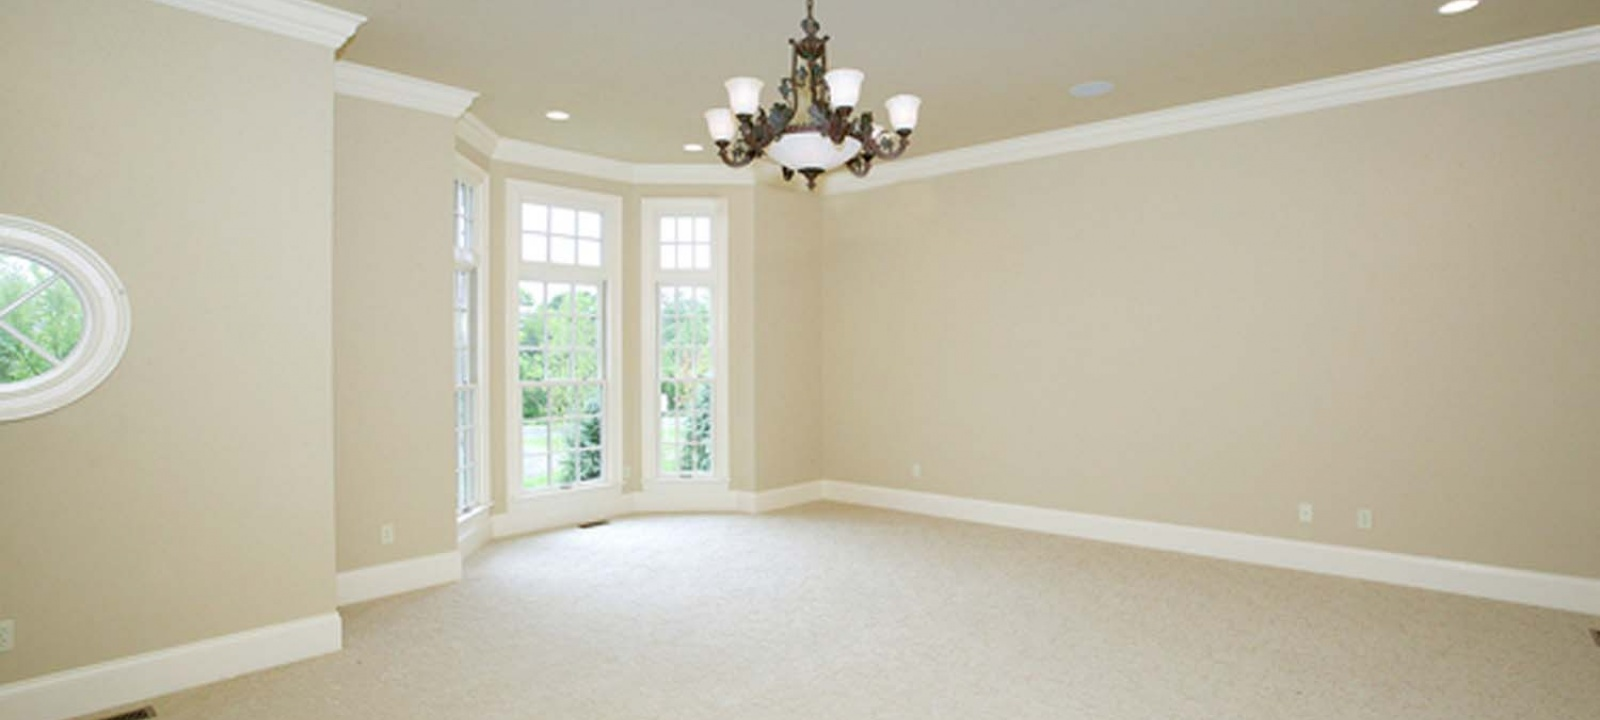 2 Vandiver Lane, Town and Country, Missouri 63131, ,House,Completed,Vandiver Lane,1009